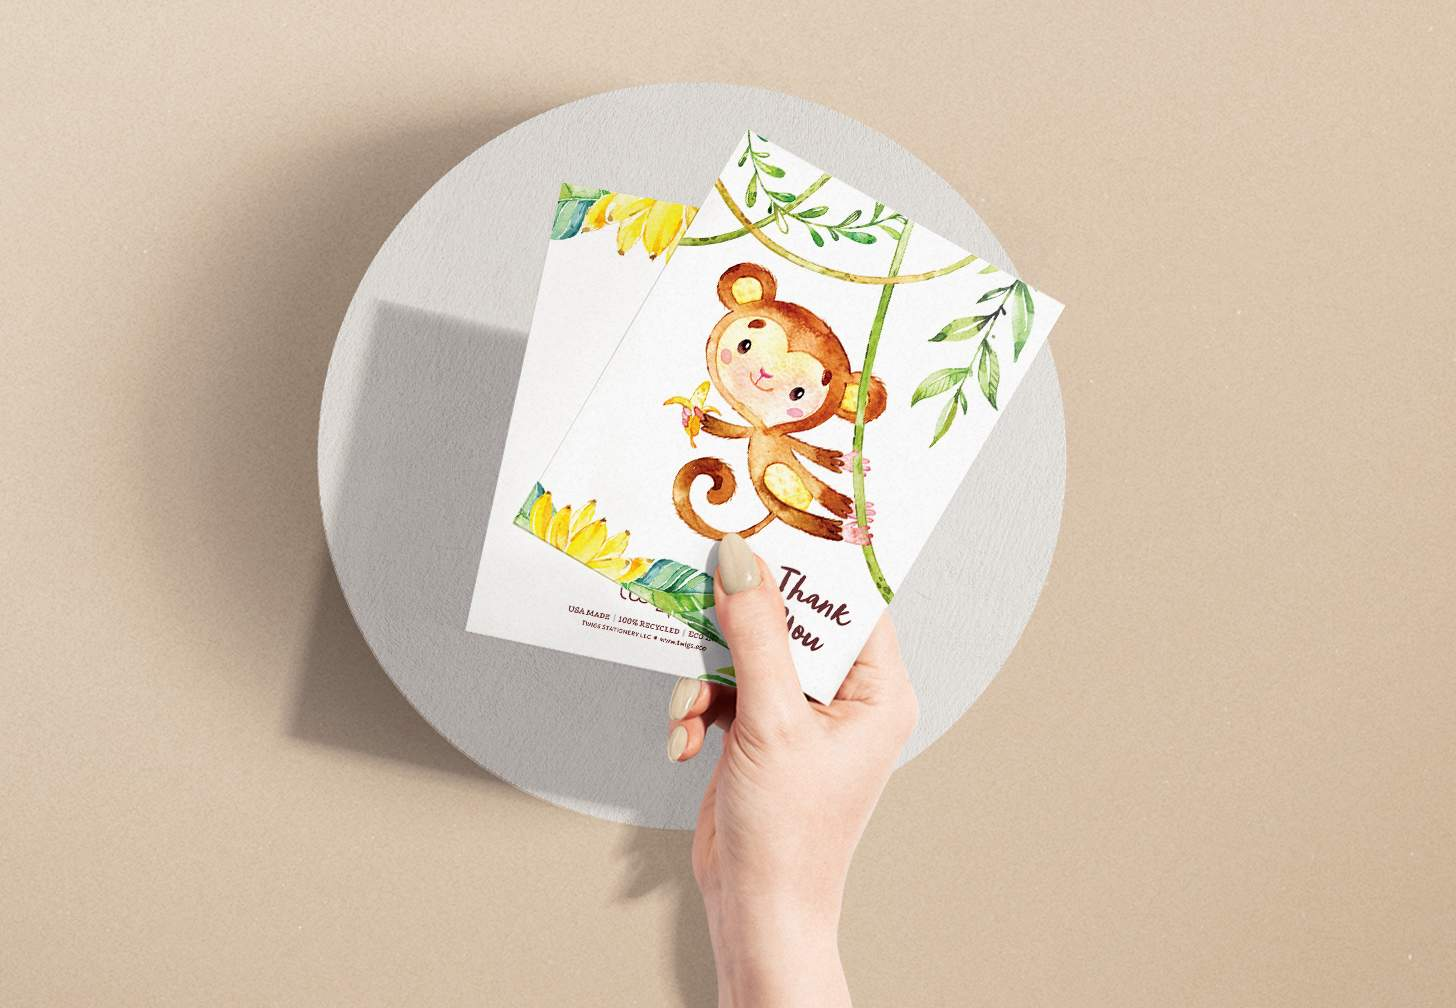 Woman's hand holding card with a cute brown monkey and tree design with a white envelope